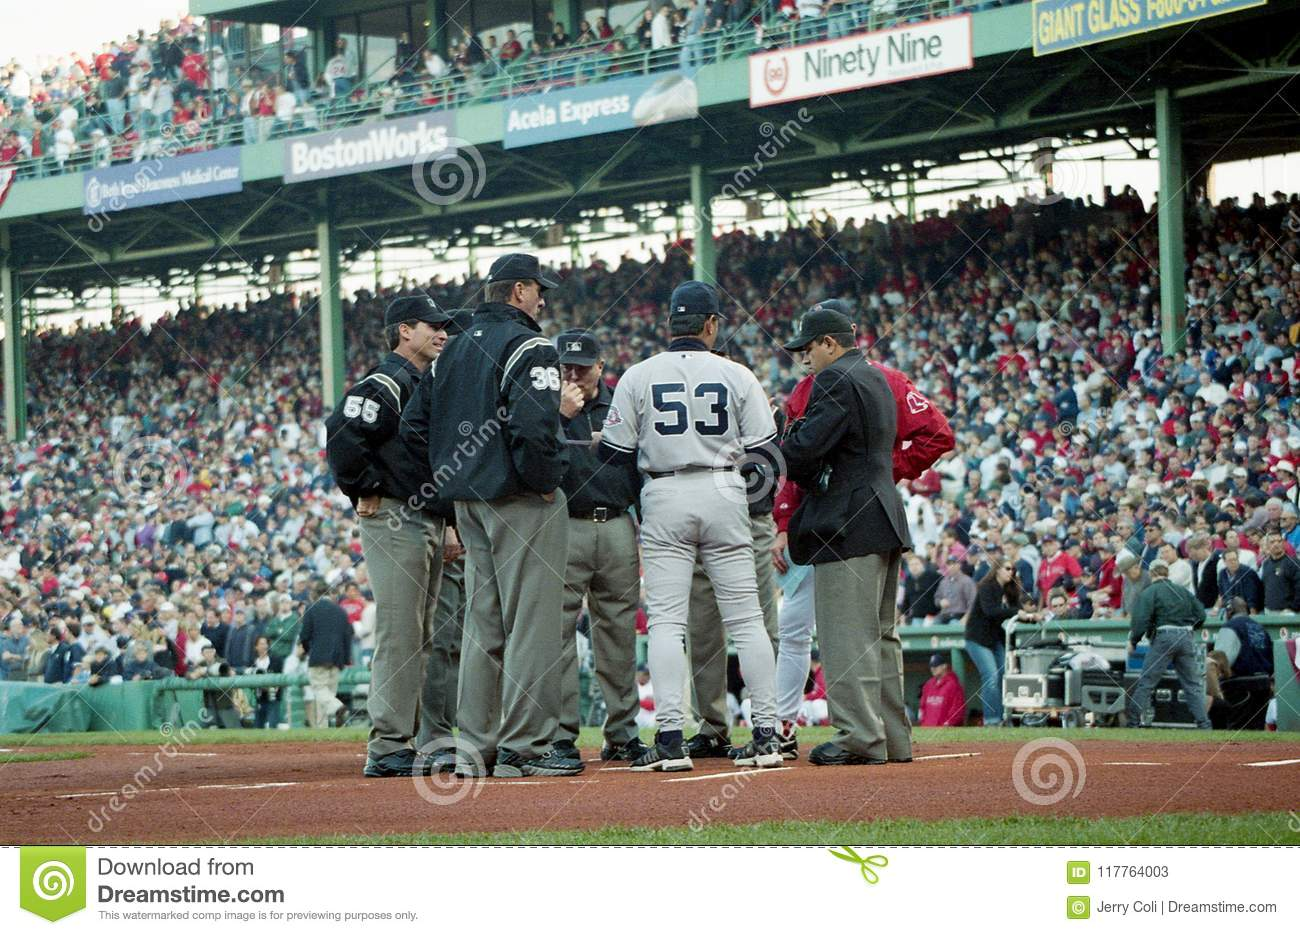 Red Sox and Yankees coaches meet at homeplate before Game 3 of the 2003 ALCS